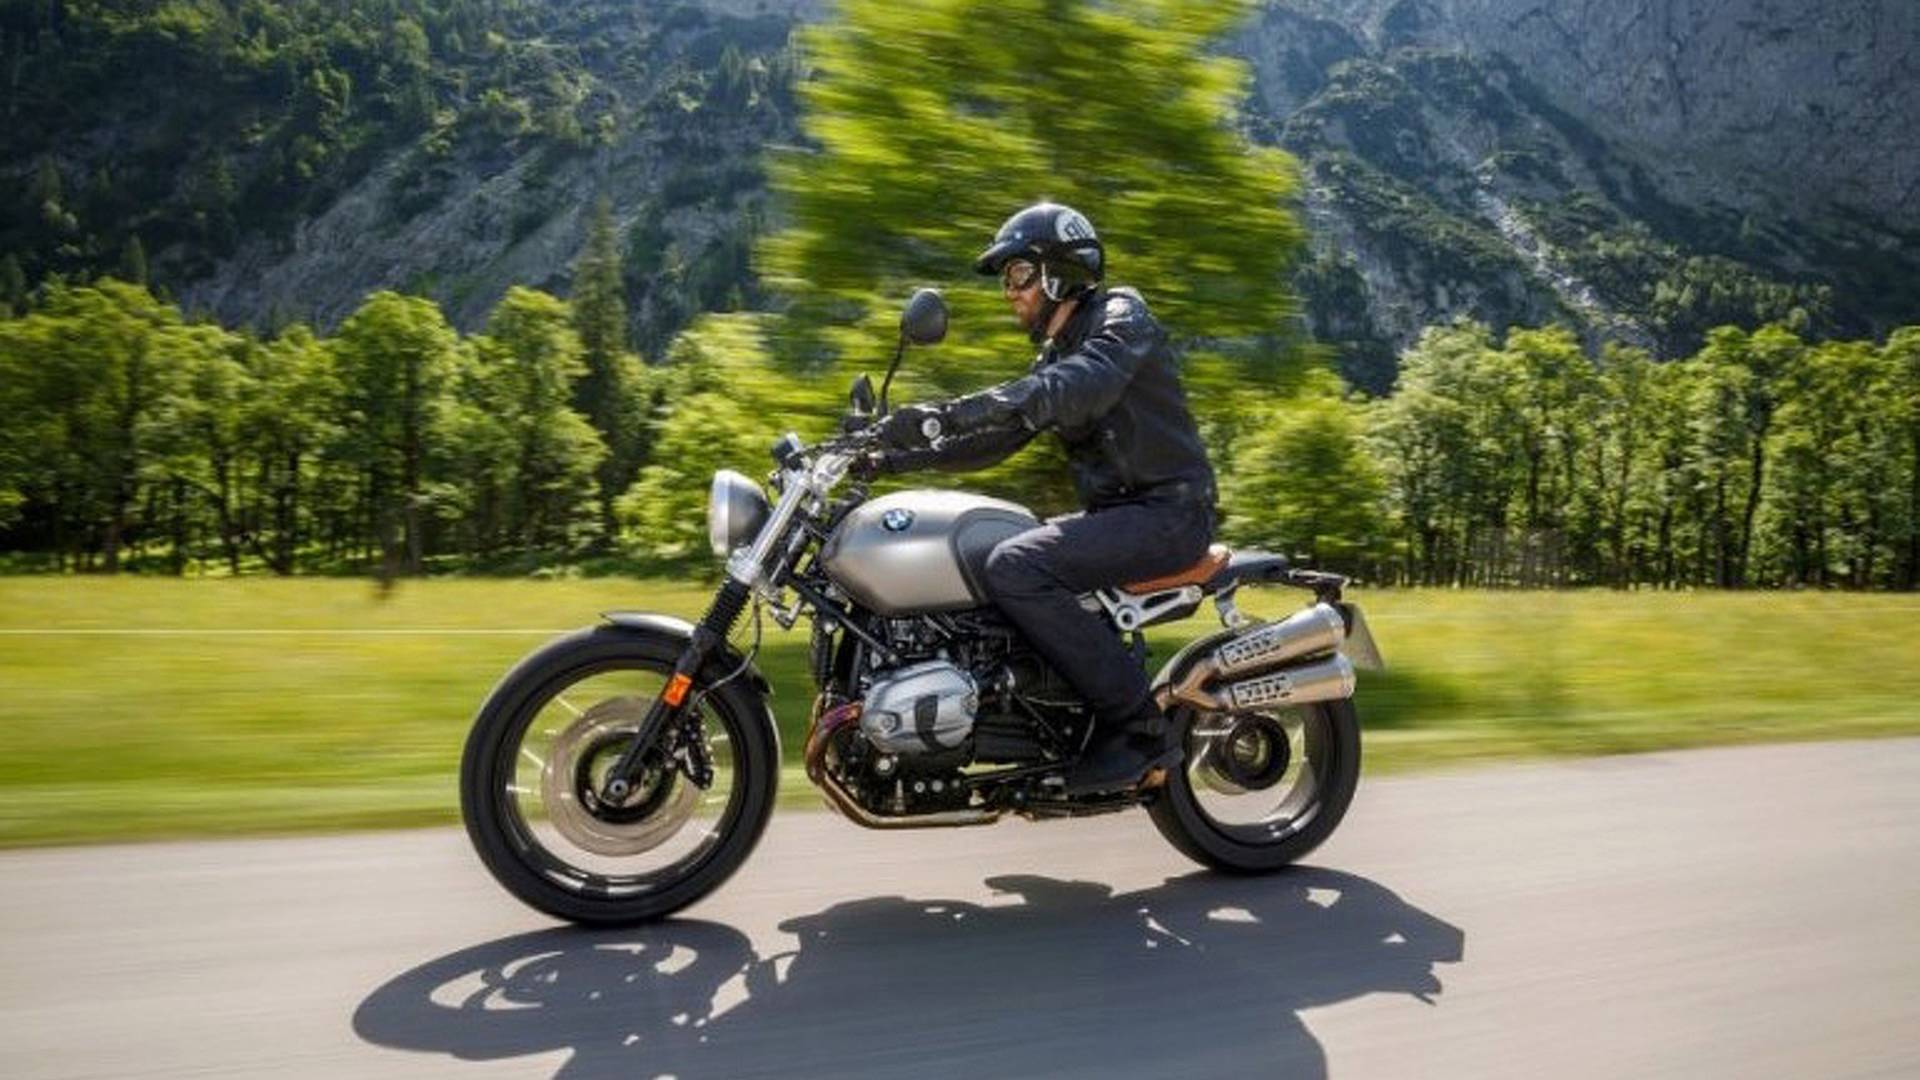 5 Things To Know About The 2017 BMW R nineT Scrambler